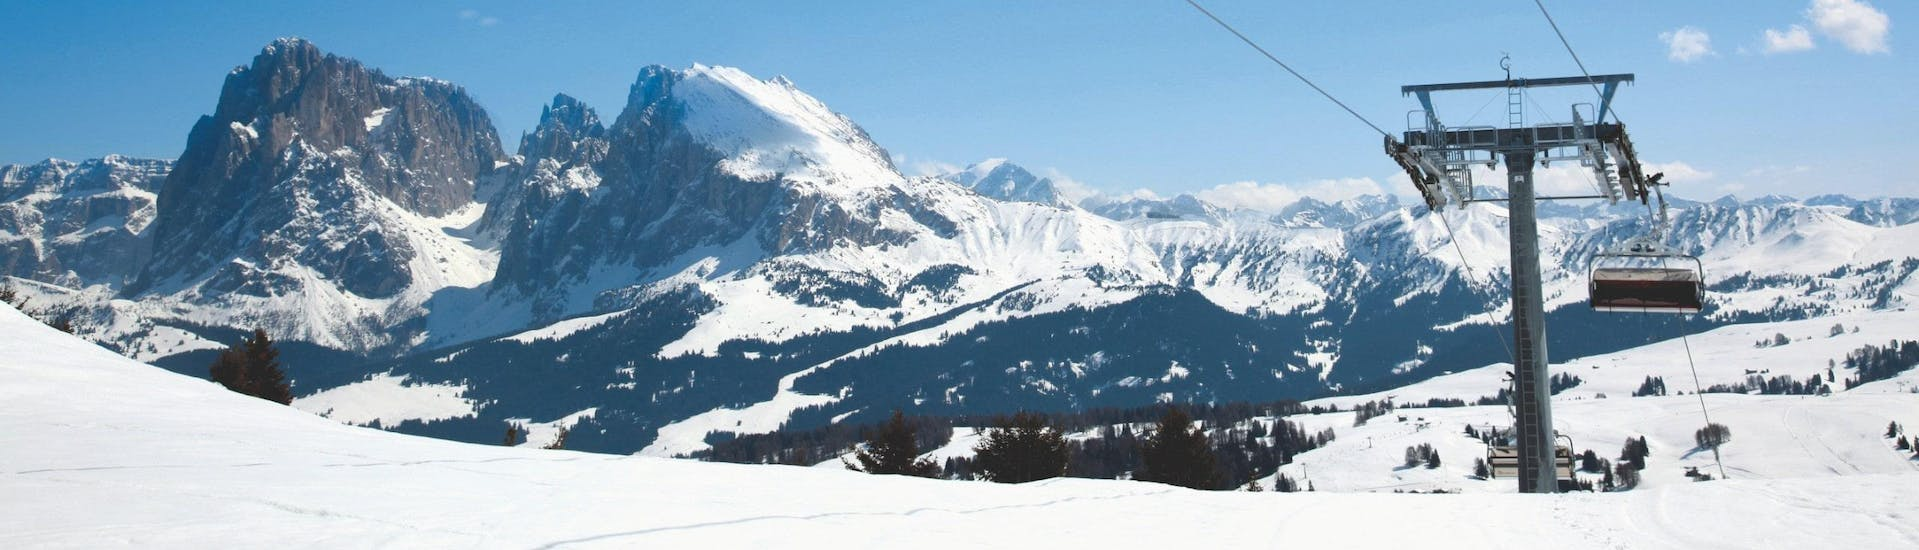 View over the sunny mountain landscape while learning to ski with the ski schools in Alpe di Siusi.